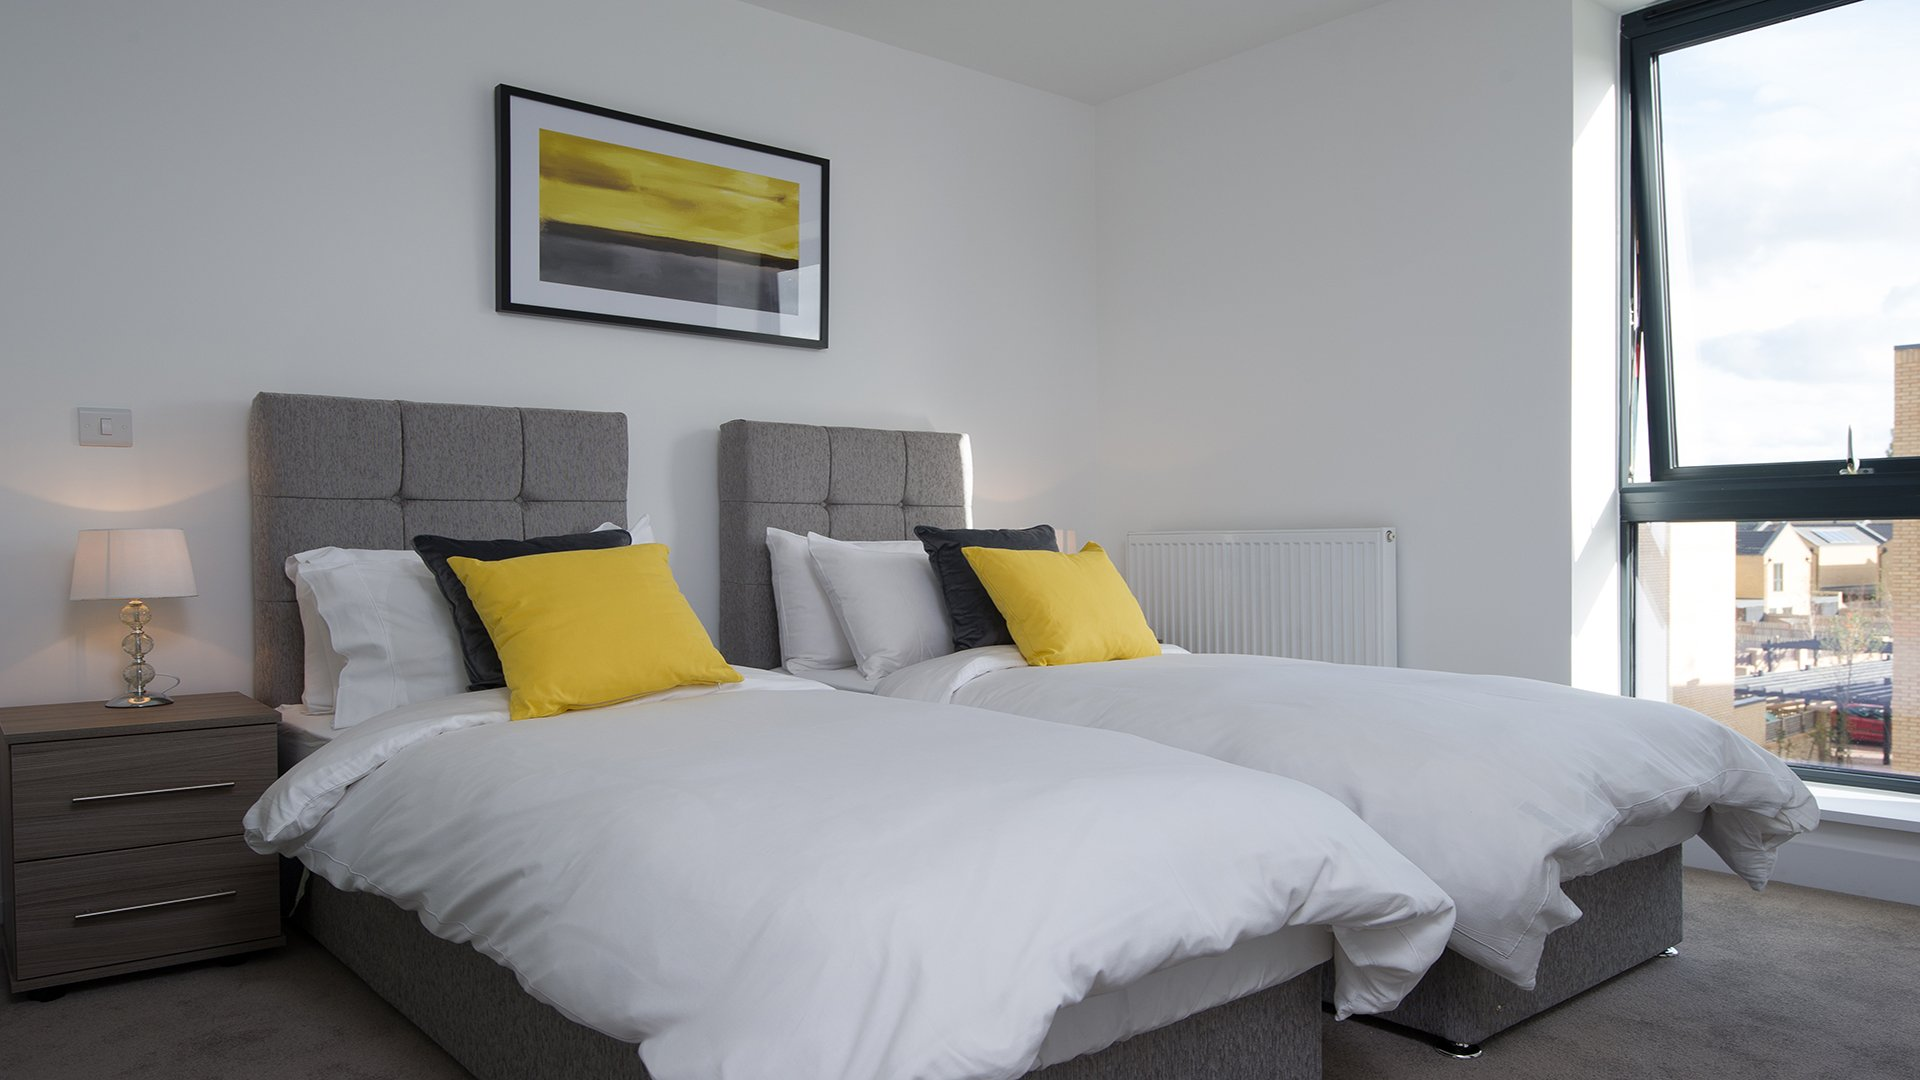 Serviced-Apartments-Cambridge-avilable-for-Short-Lets-Now!!-Book-Corporate-Accommodation-in-Cambridge-Trumpington-today!-Free-Cleaning,-Wifi-&-Netflix!!